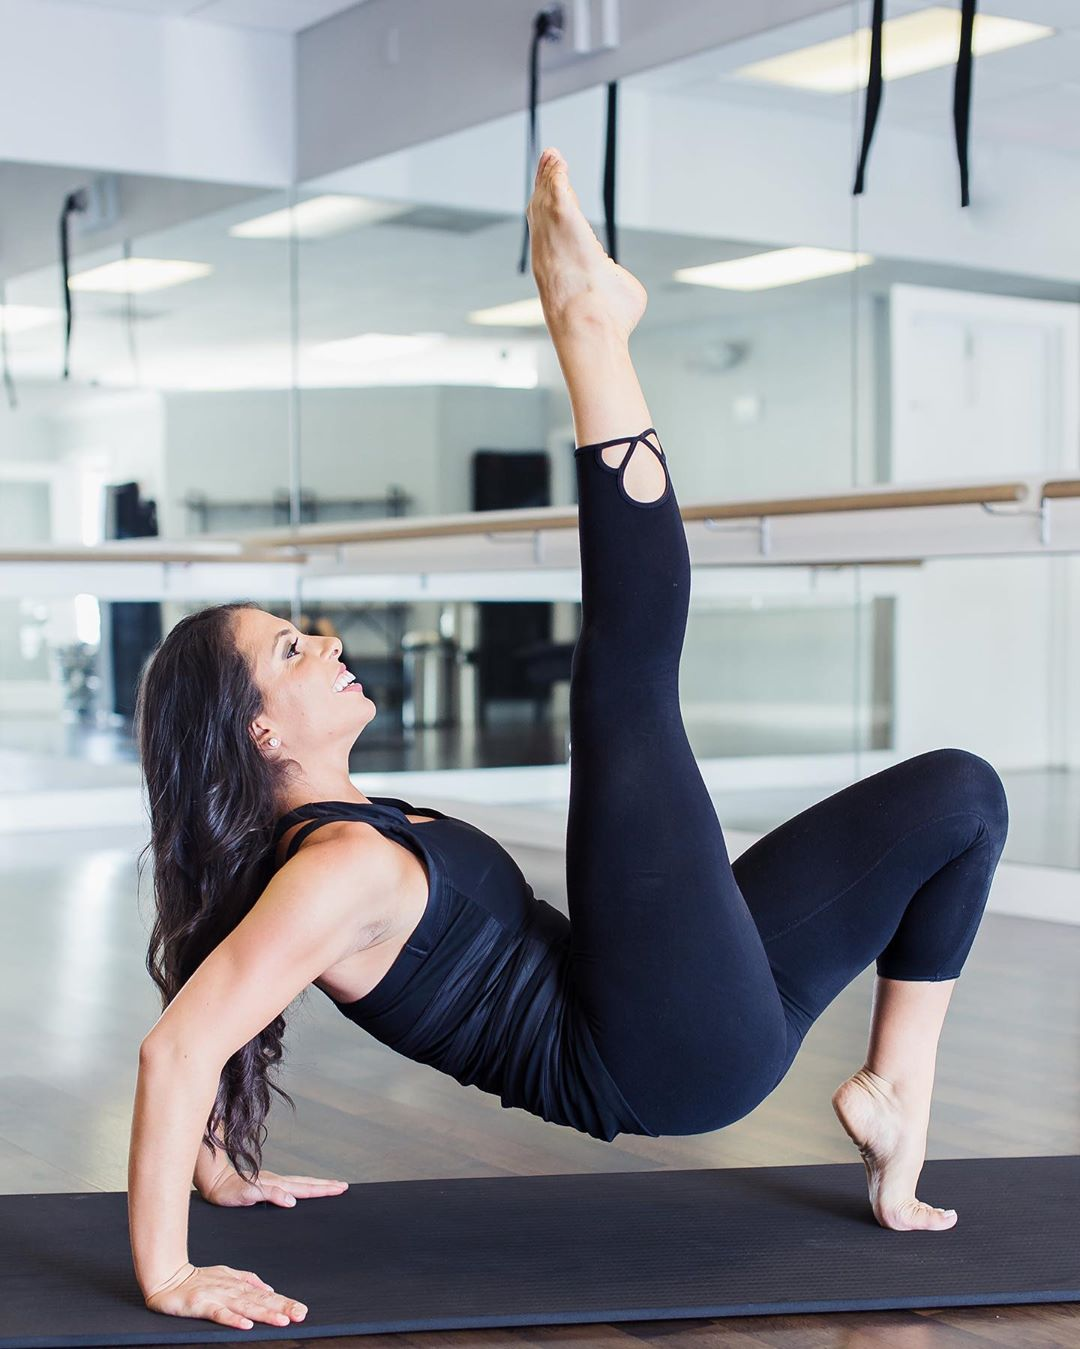 Ginelle Ruffa    @ginelleruffa   Bounce Fit - Friday, October 11 at 6:30pm  Poolside Pilates - Saturday, October 12 at 9am